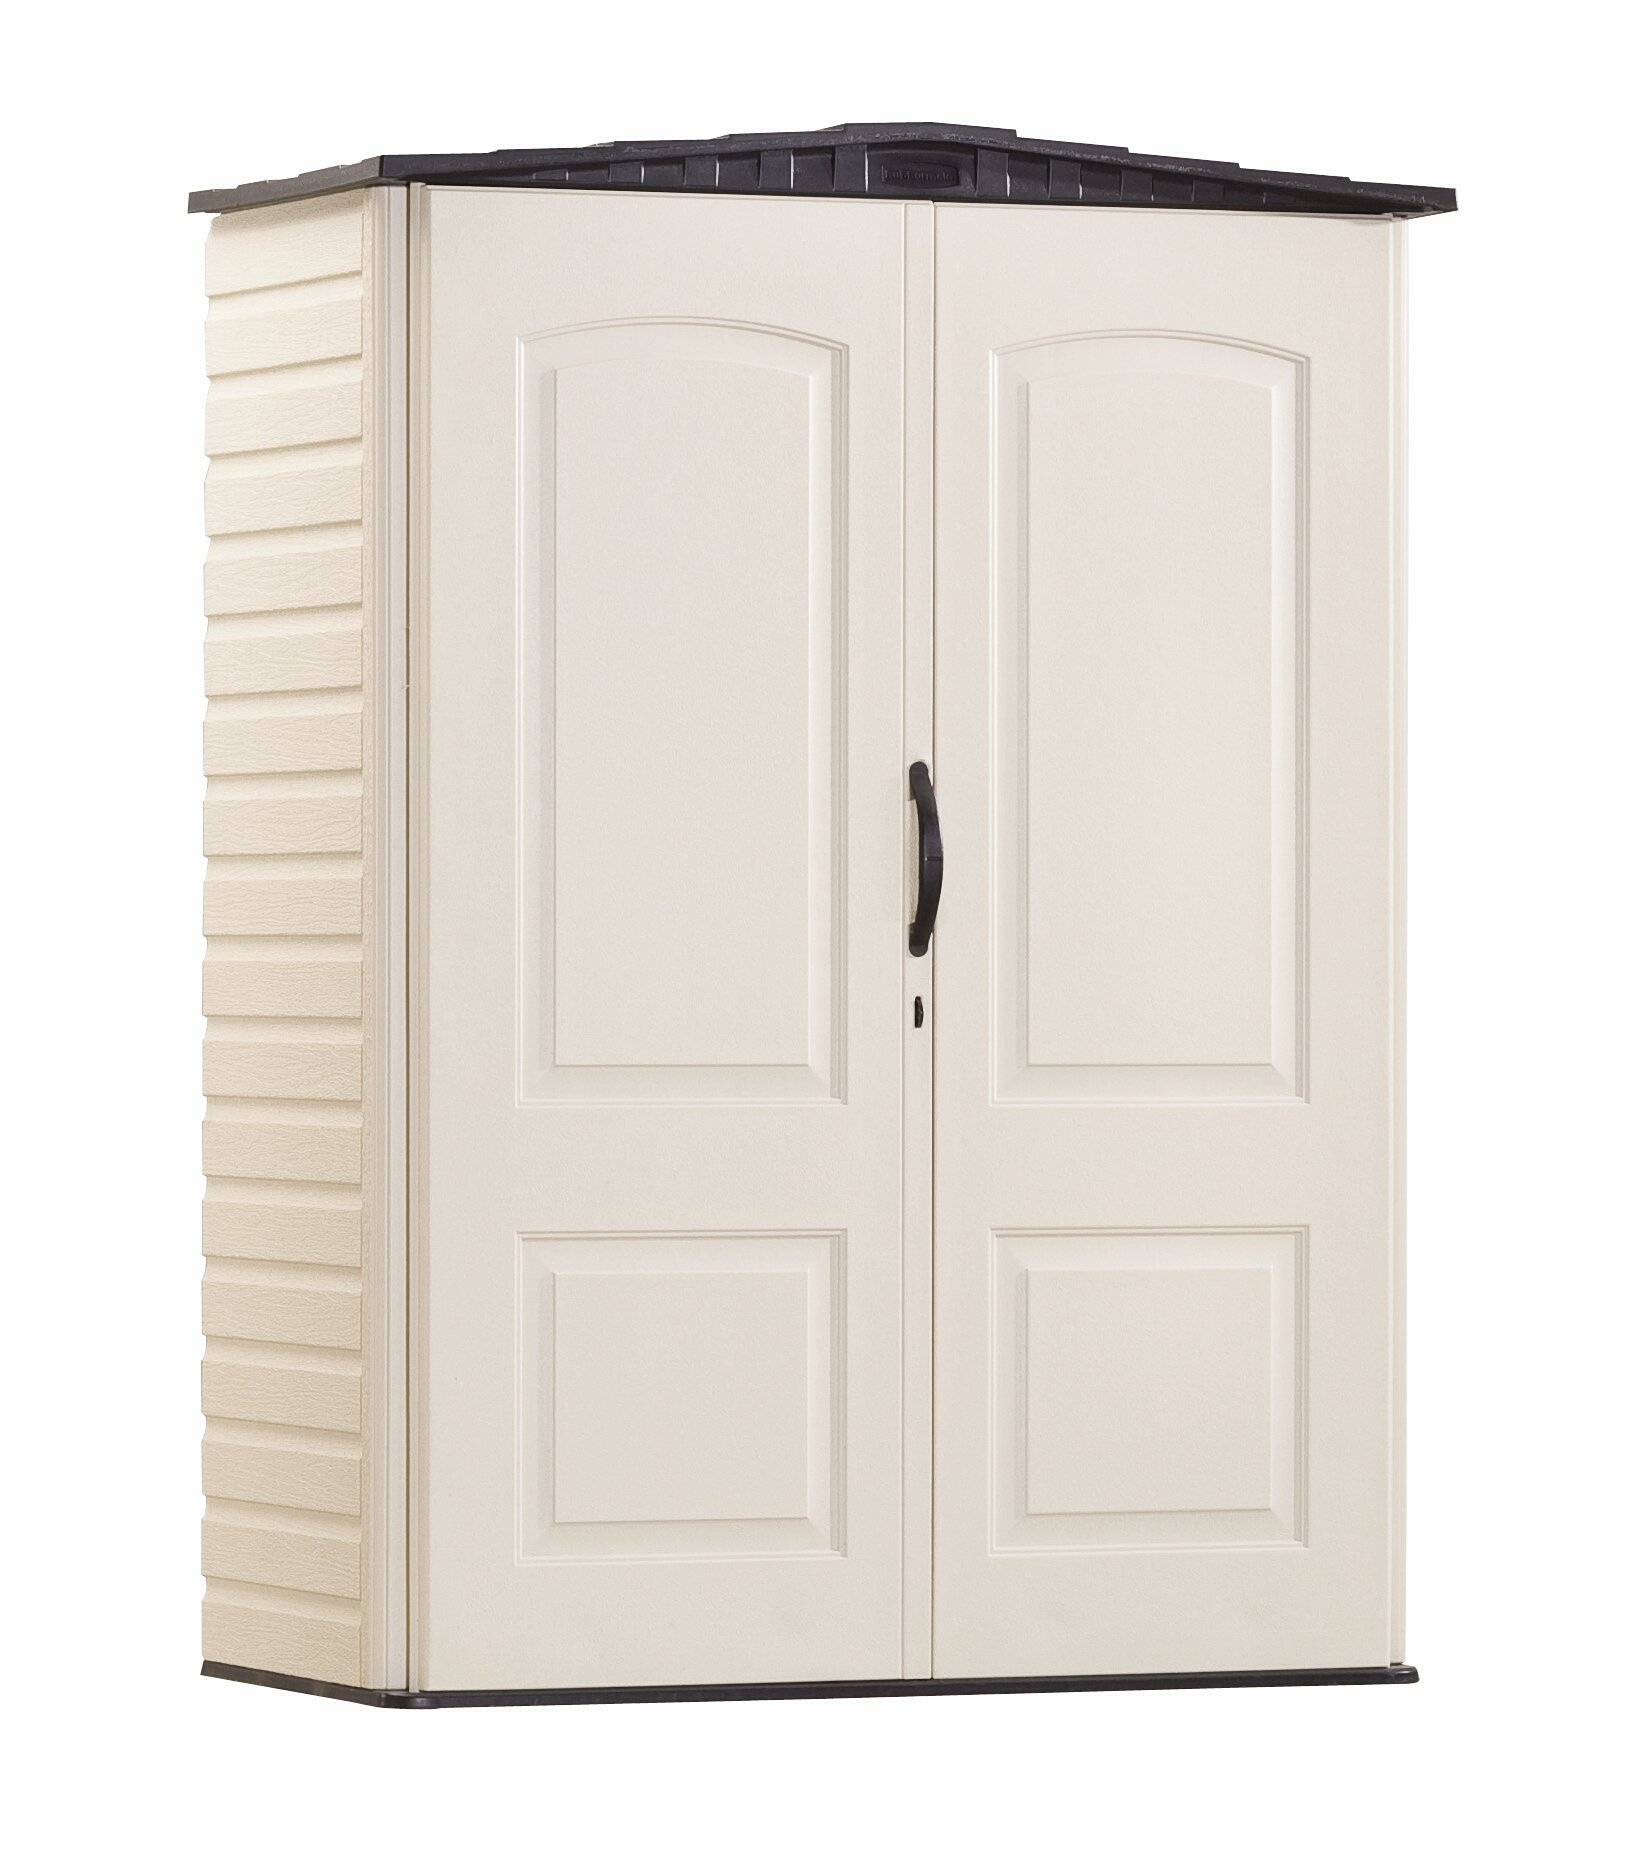 Rubbermaid Plastic Small Outdoor Storage Shed, 53-Cubic Feet, FG5L1000SDONX